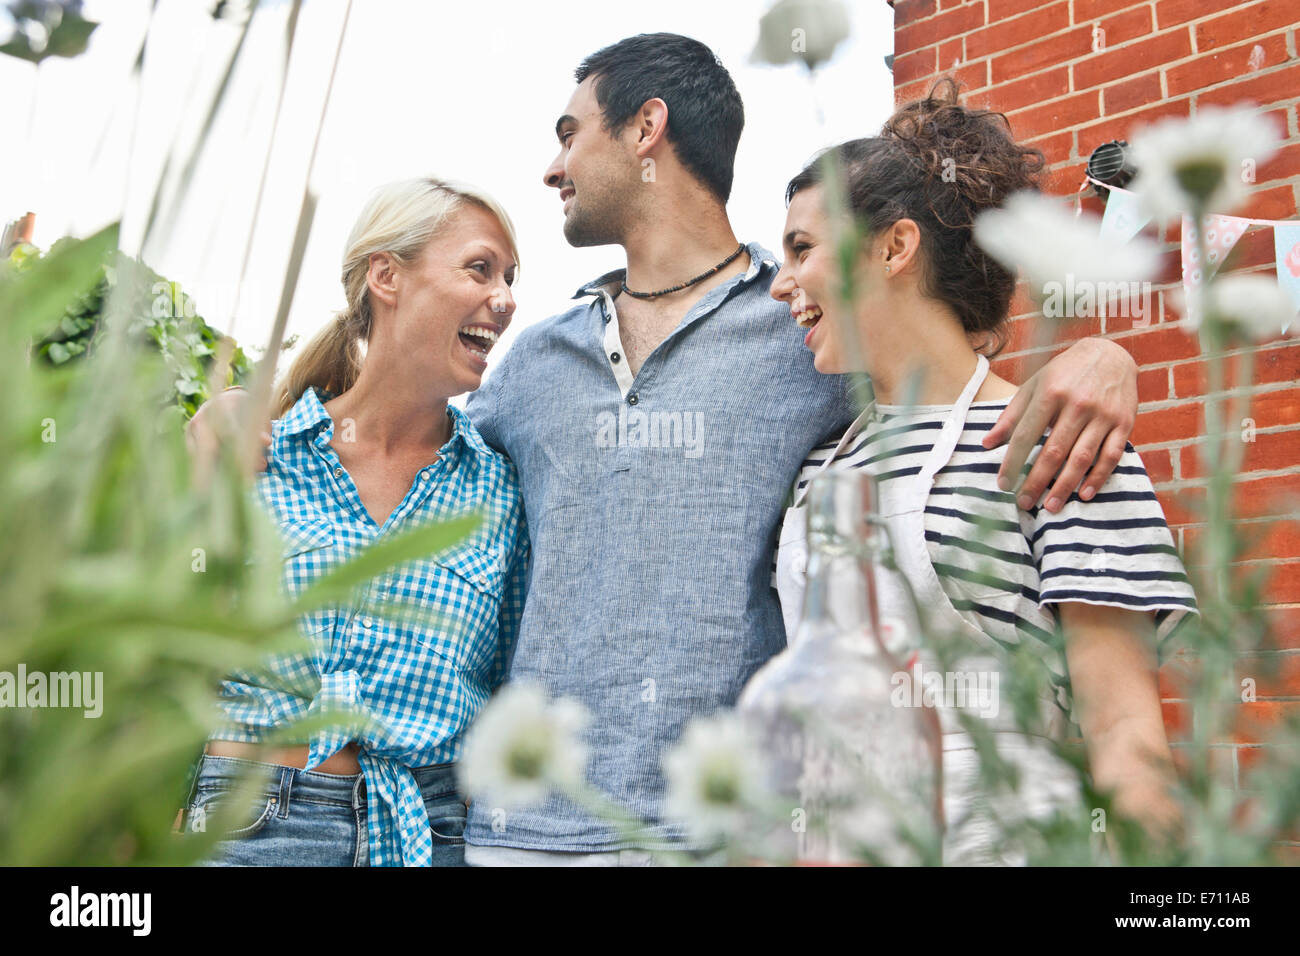 Three friends at garden party - Stock Image